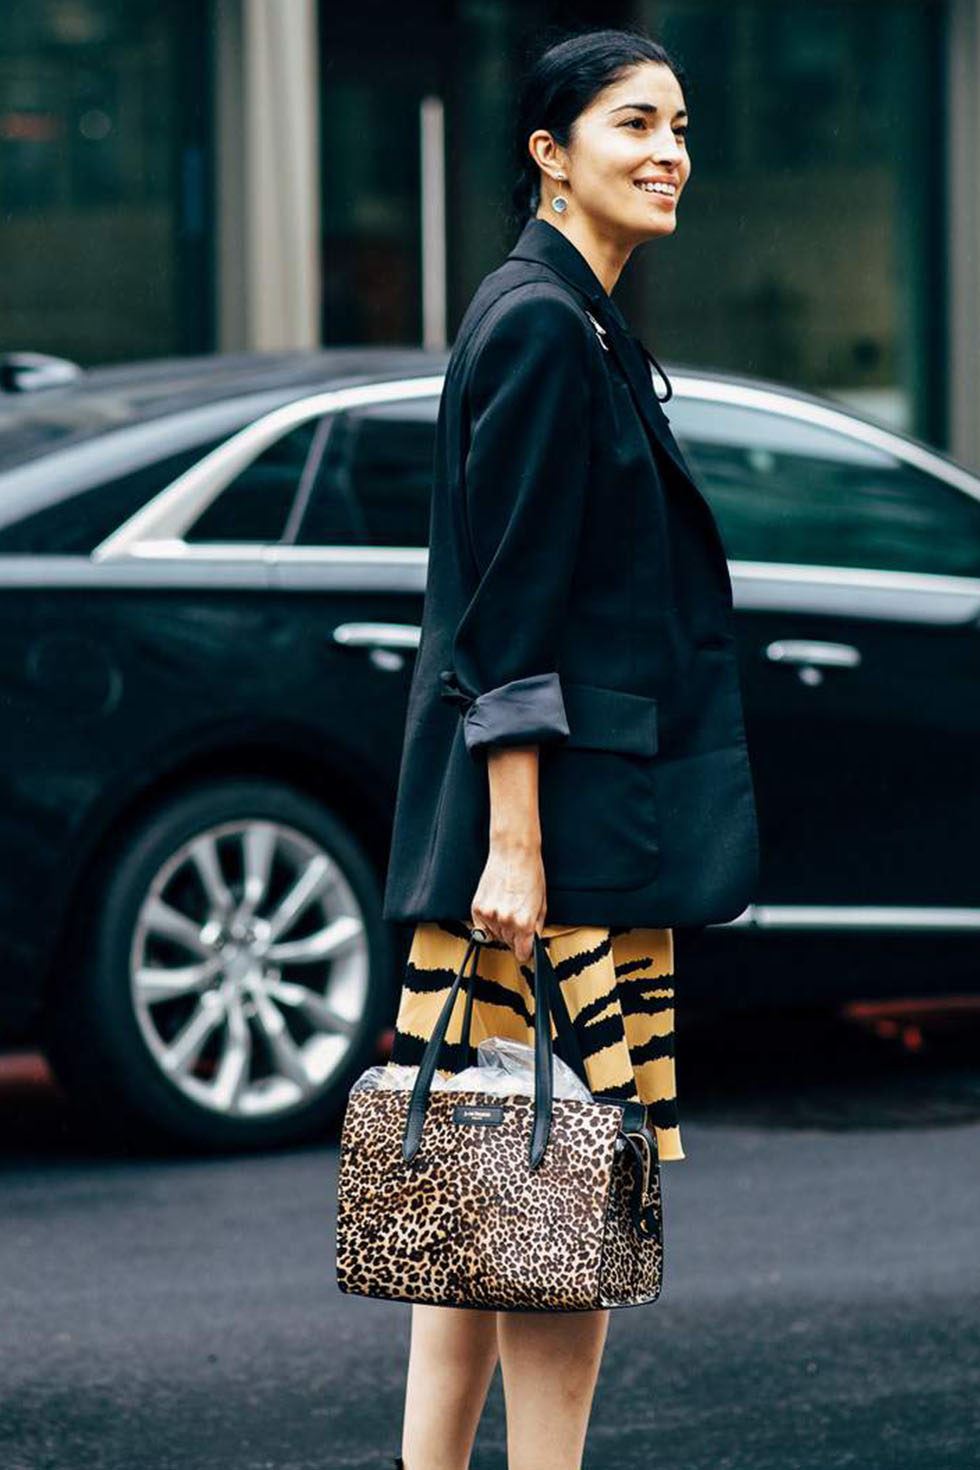 Leopard print a trend for forever and ever